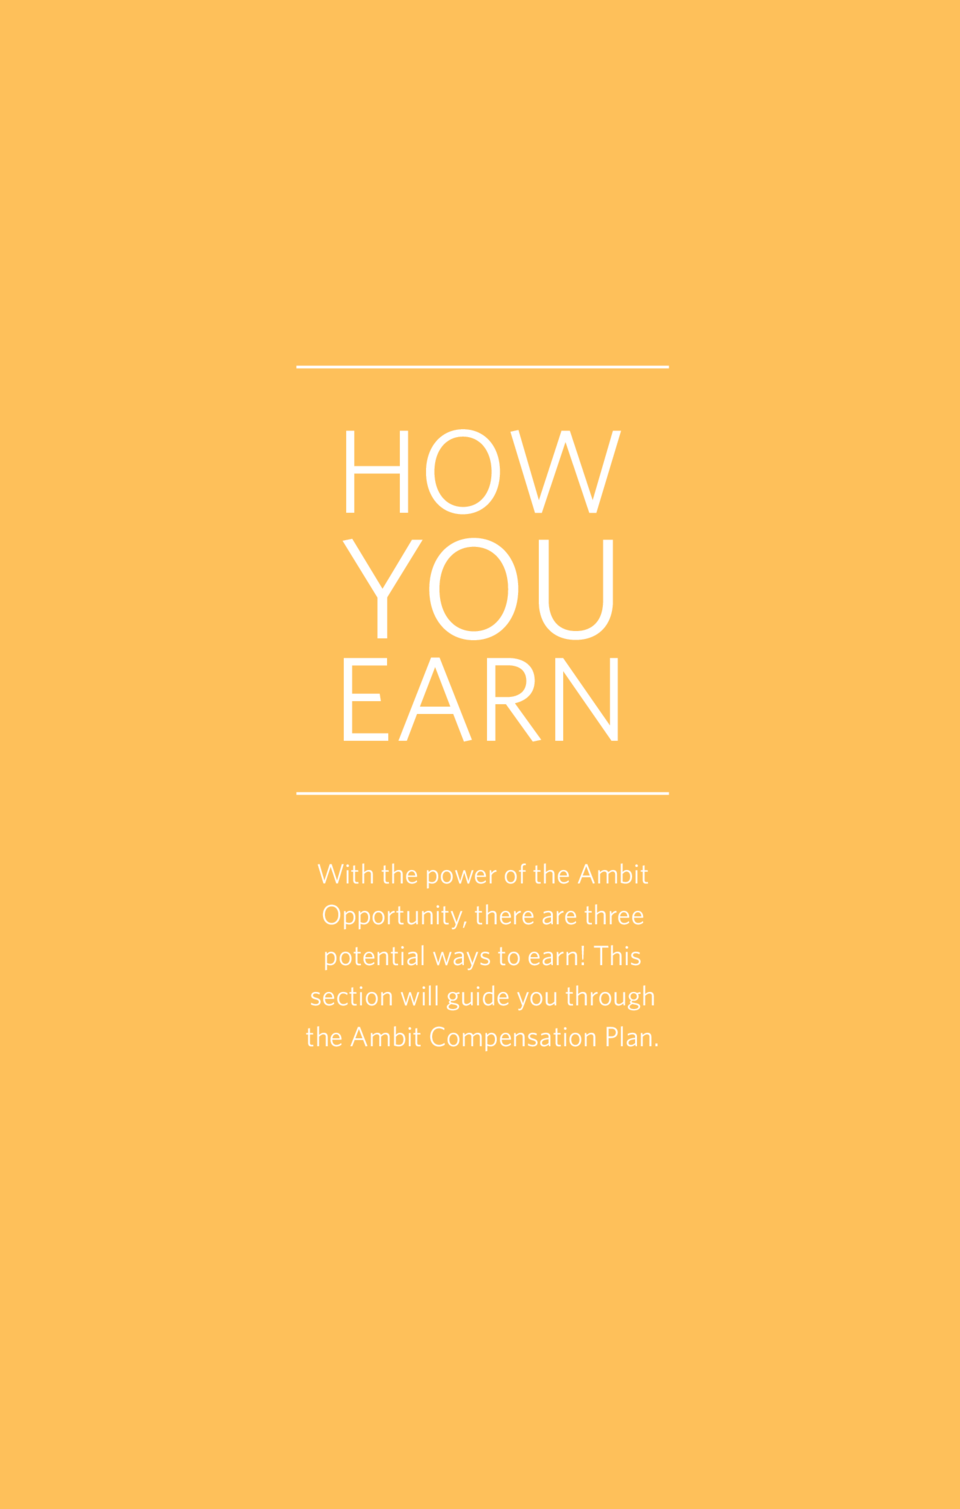 HOW  YOU  EARN With the power of the Ambit Opportunity, there are three potential ways to earn  This section will guide yo...